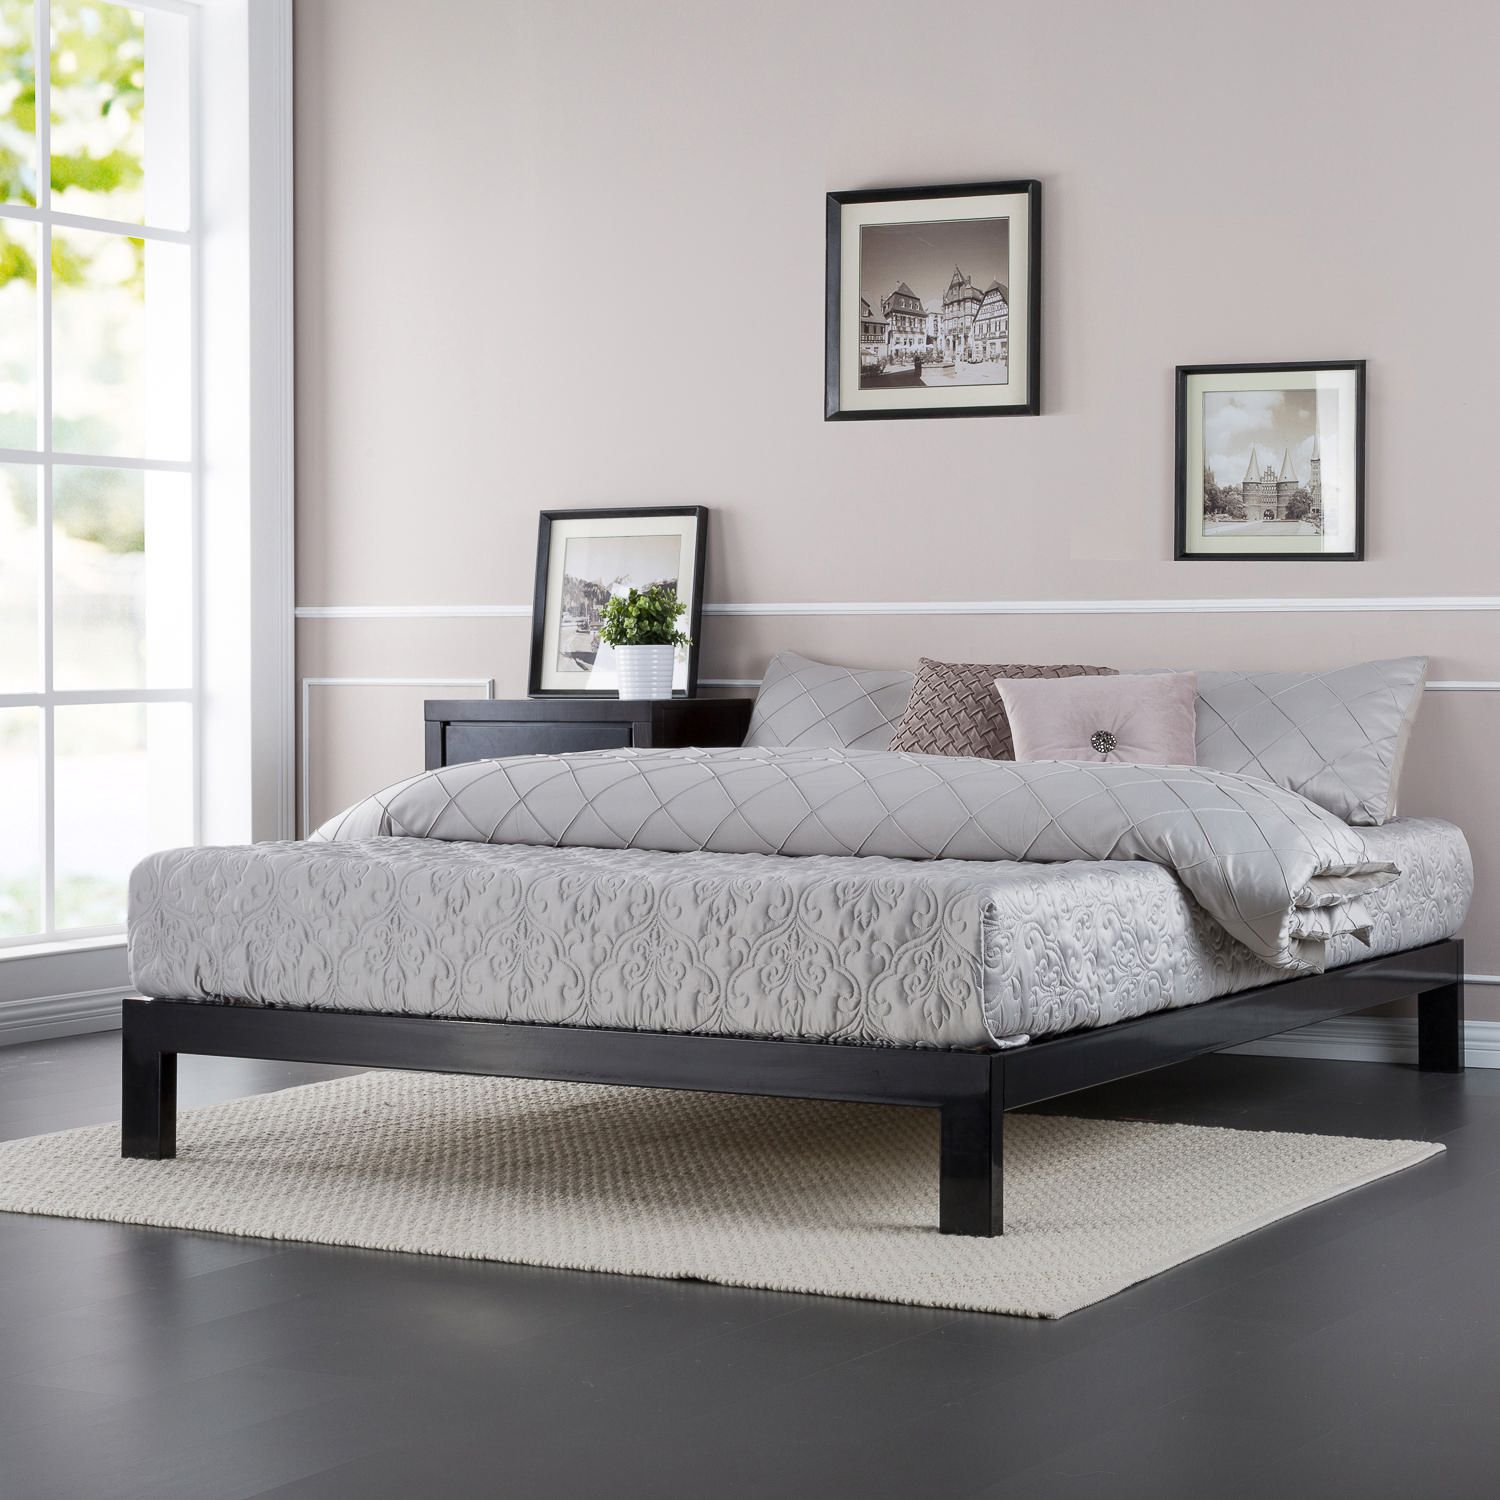 buy bed frames & accessories online | walmart canada